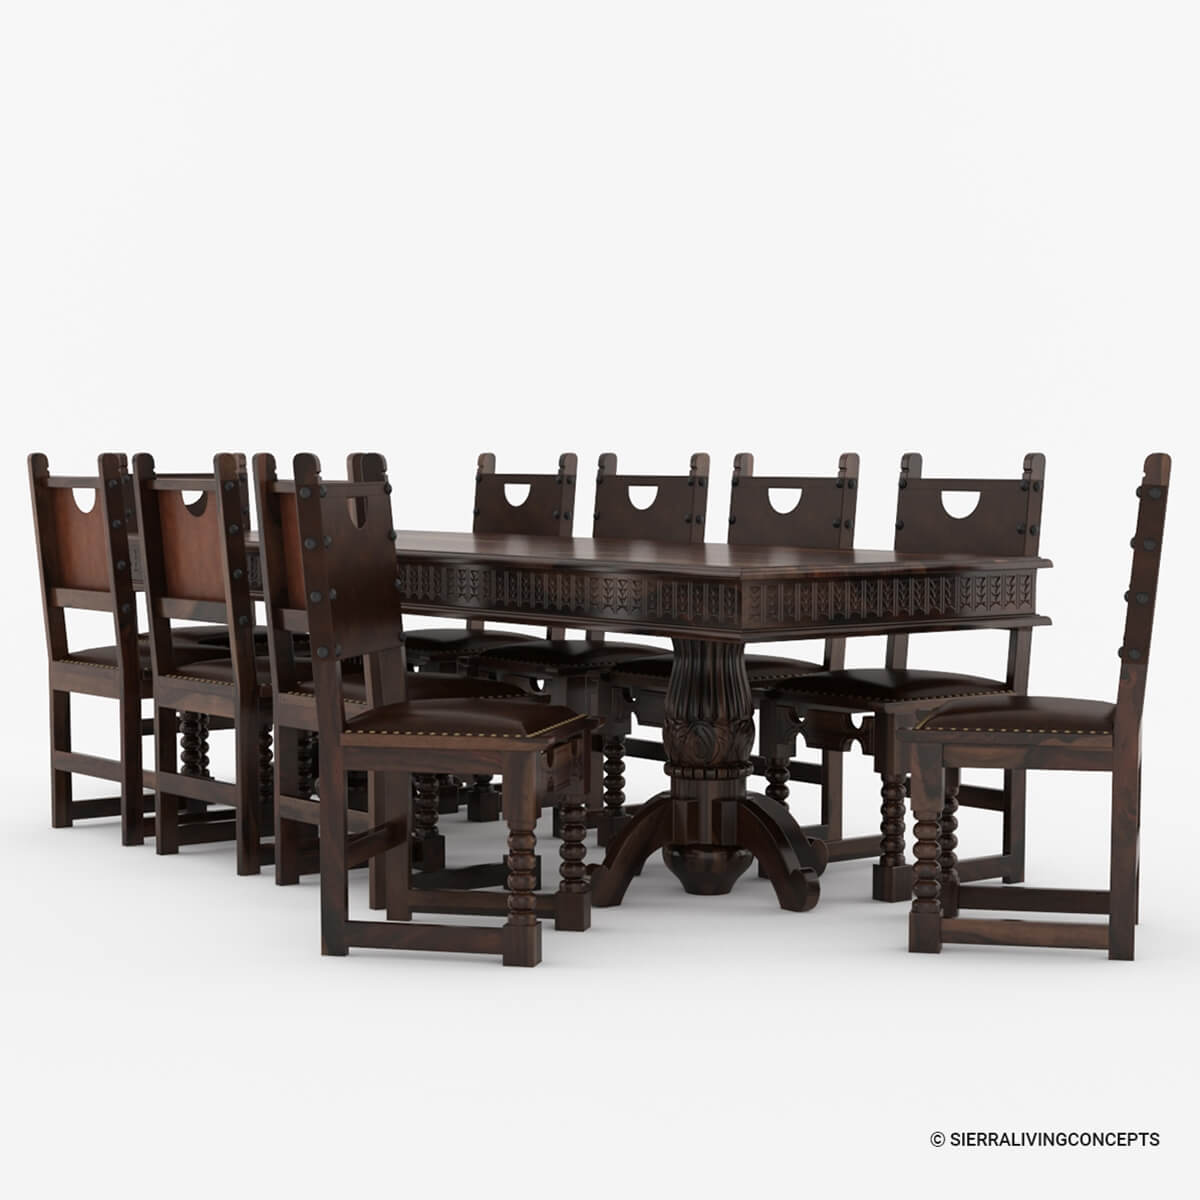 Nottingham solid wood large rustic dining room table chair set for Solid wood dining room table and chairs